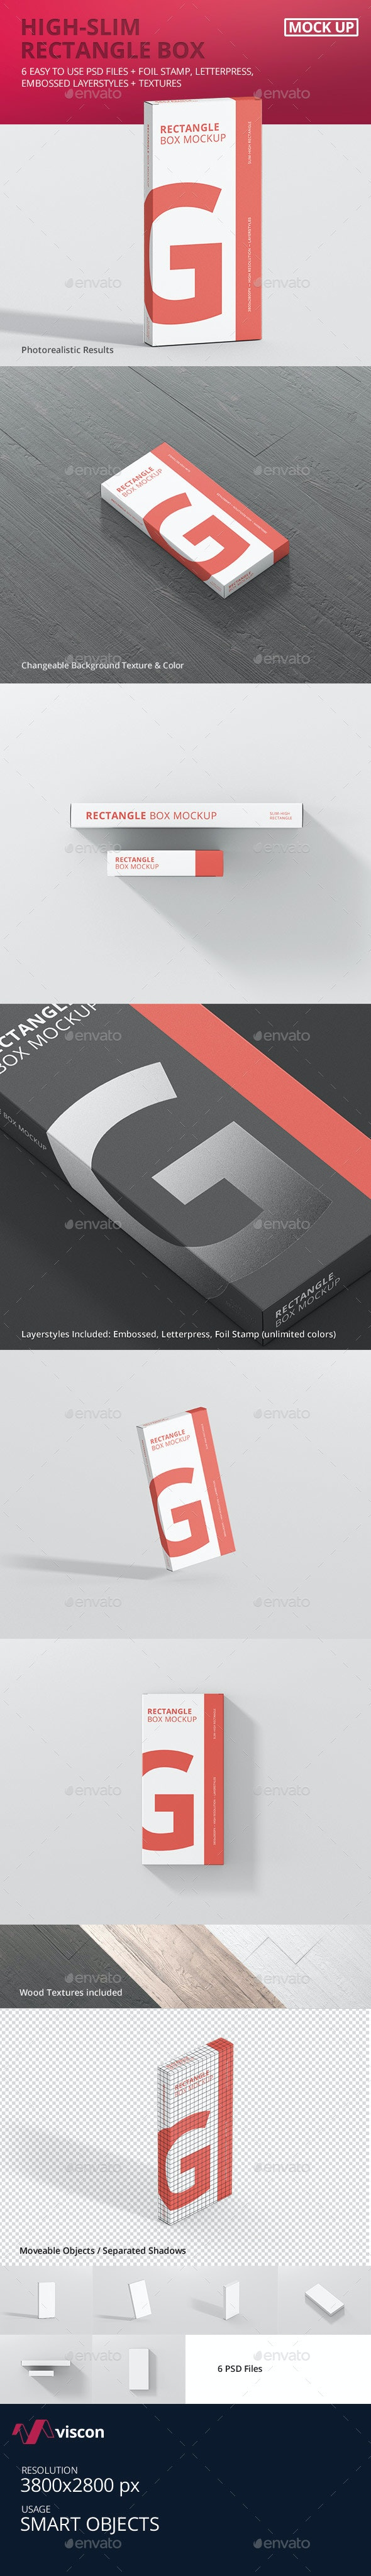 Box Mockup - High Slim Rectangle - Miscellaneous Packaging